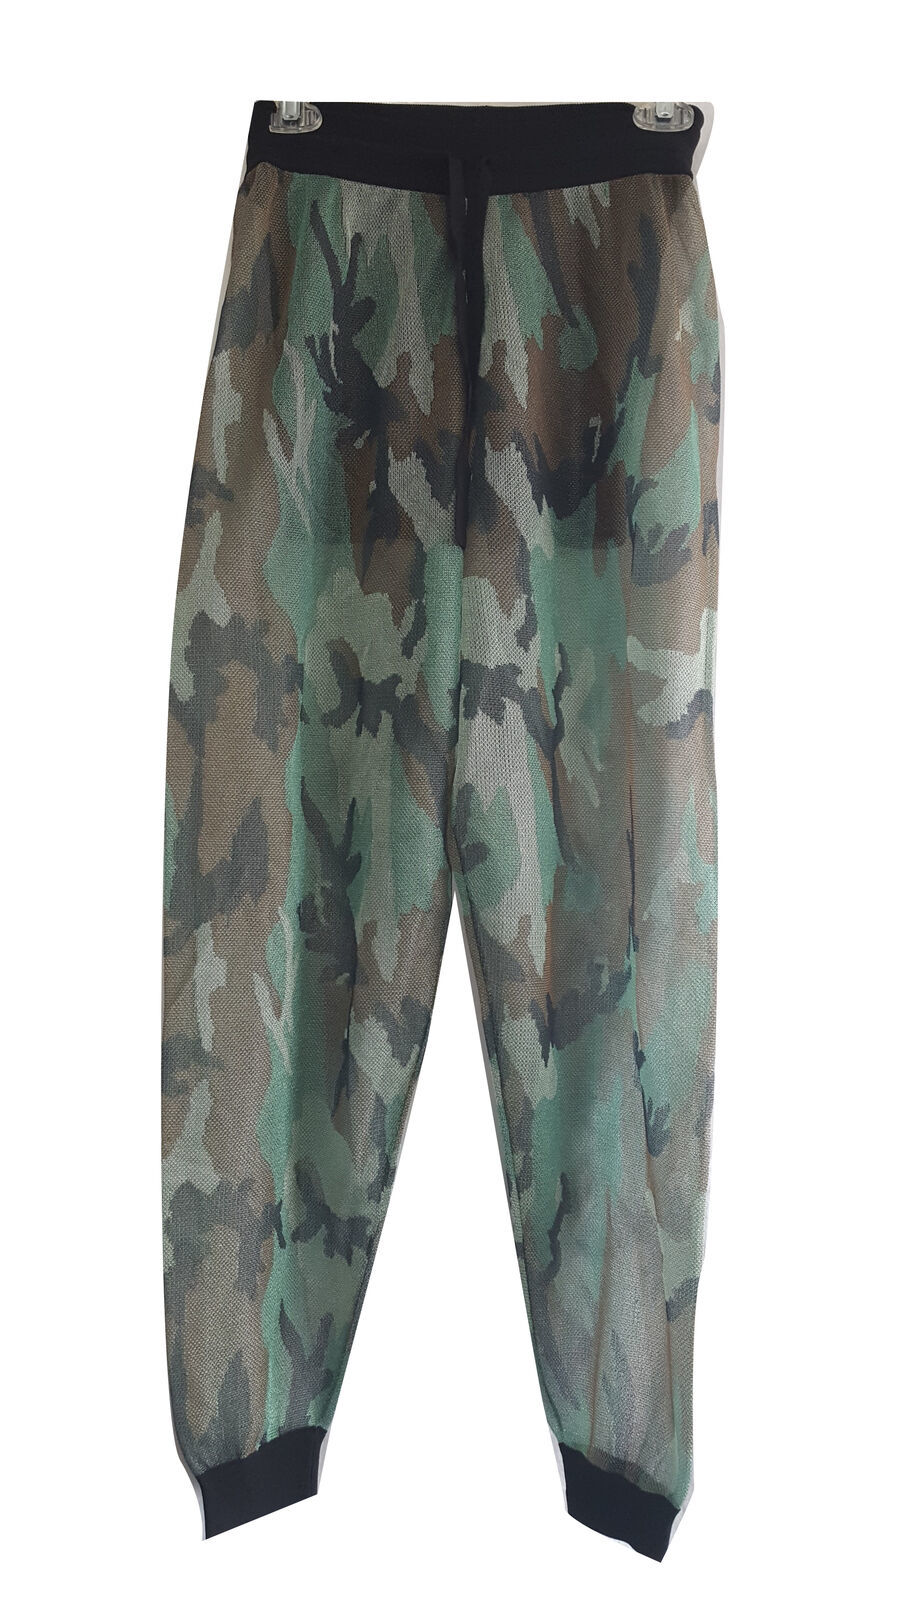 Kendall and Kylie Camo Mesh Drawstring Pant, Mint Camo Multi, Small